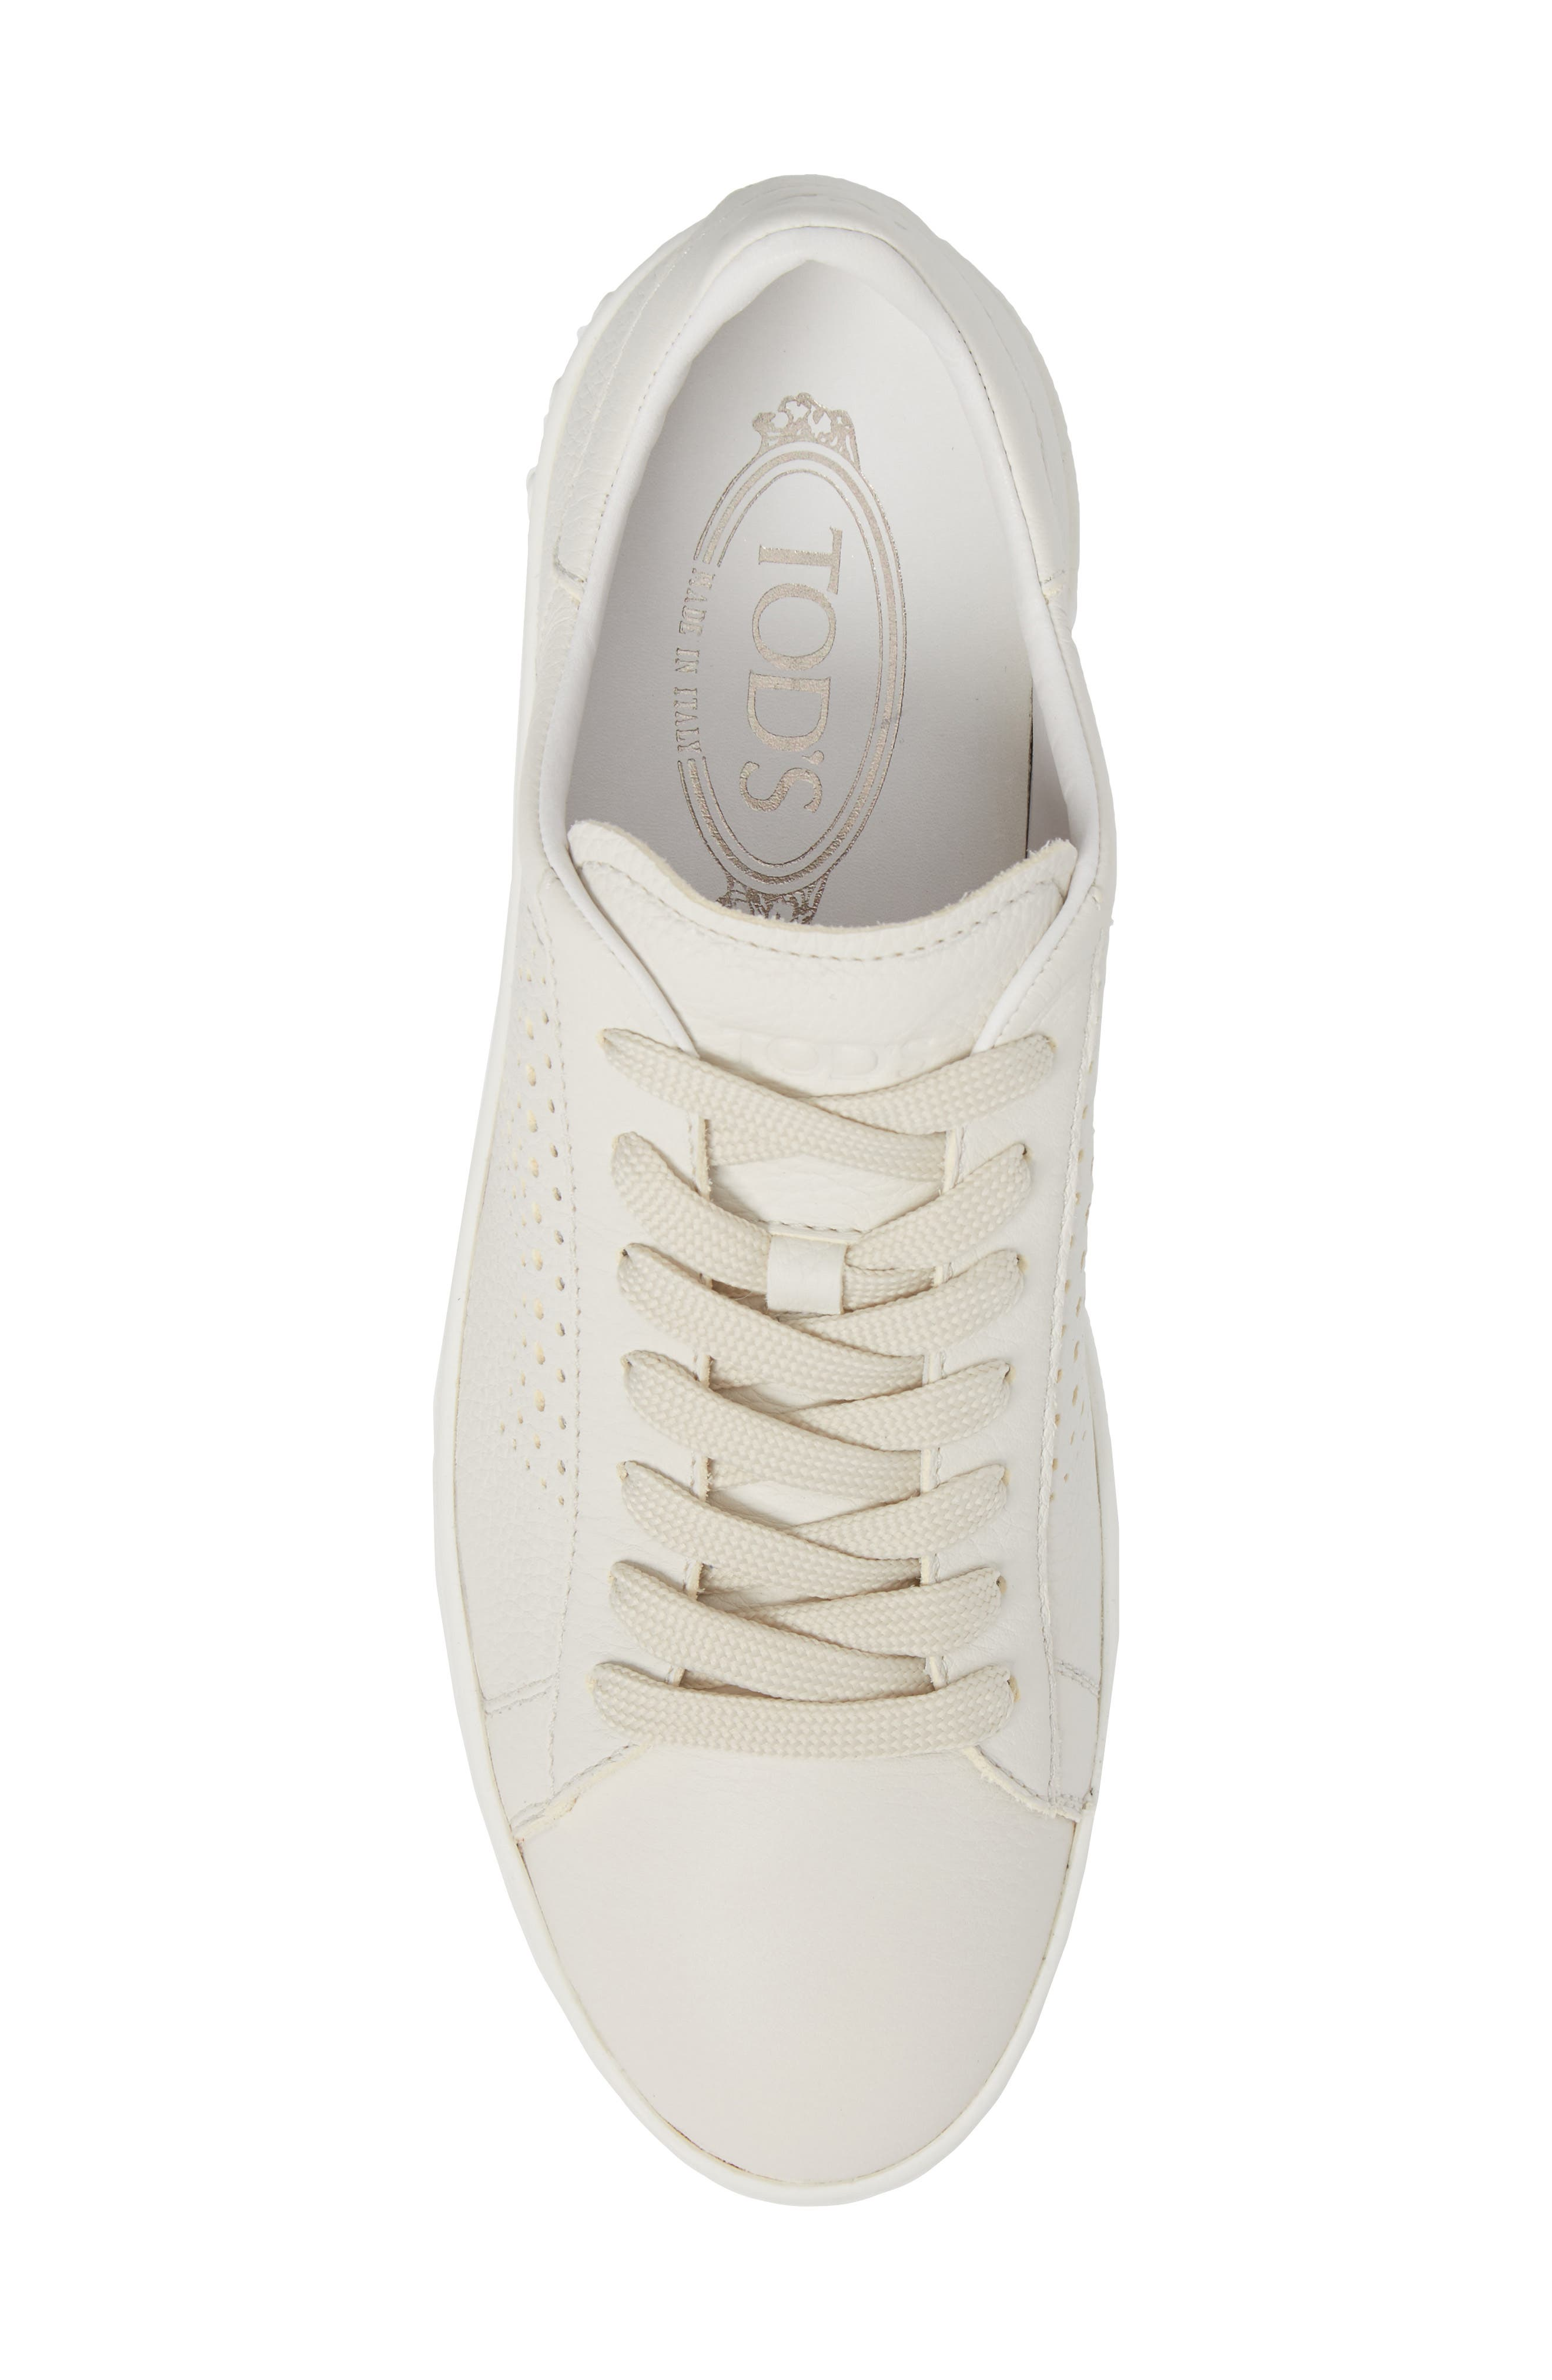 Tods Perforated T Sneaker,                             Alternate thumbnail 5, color,                             100